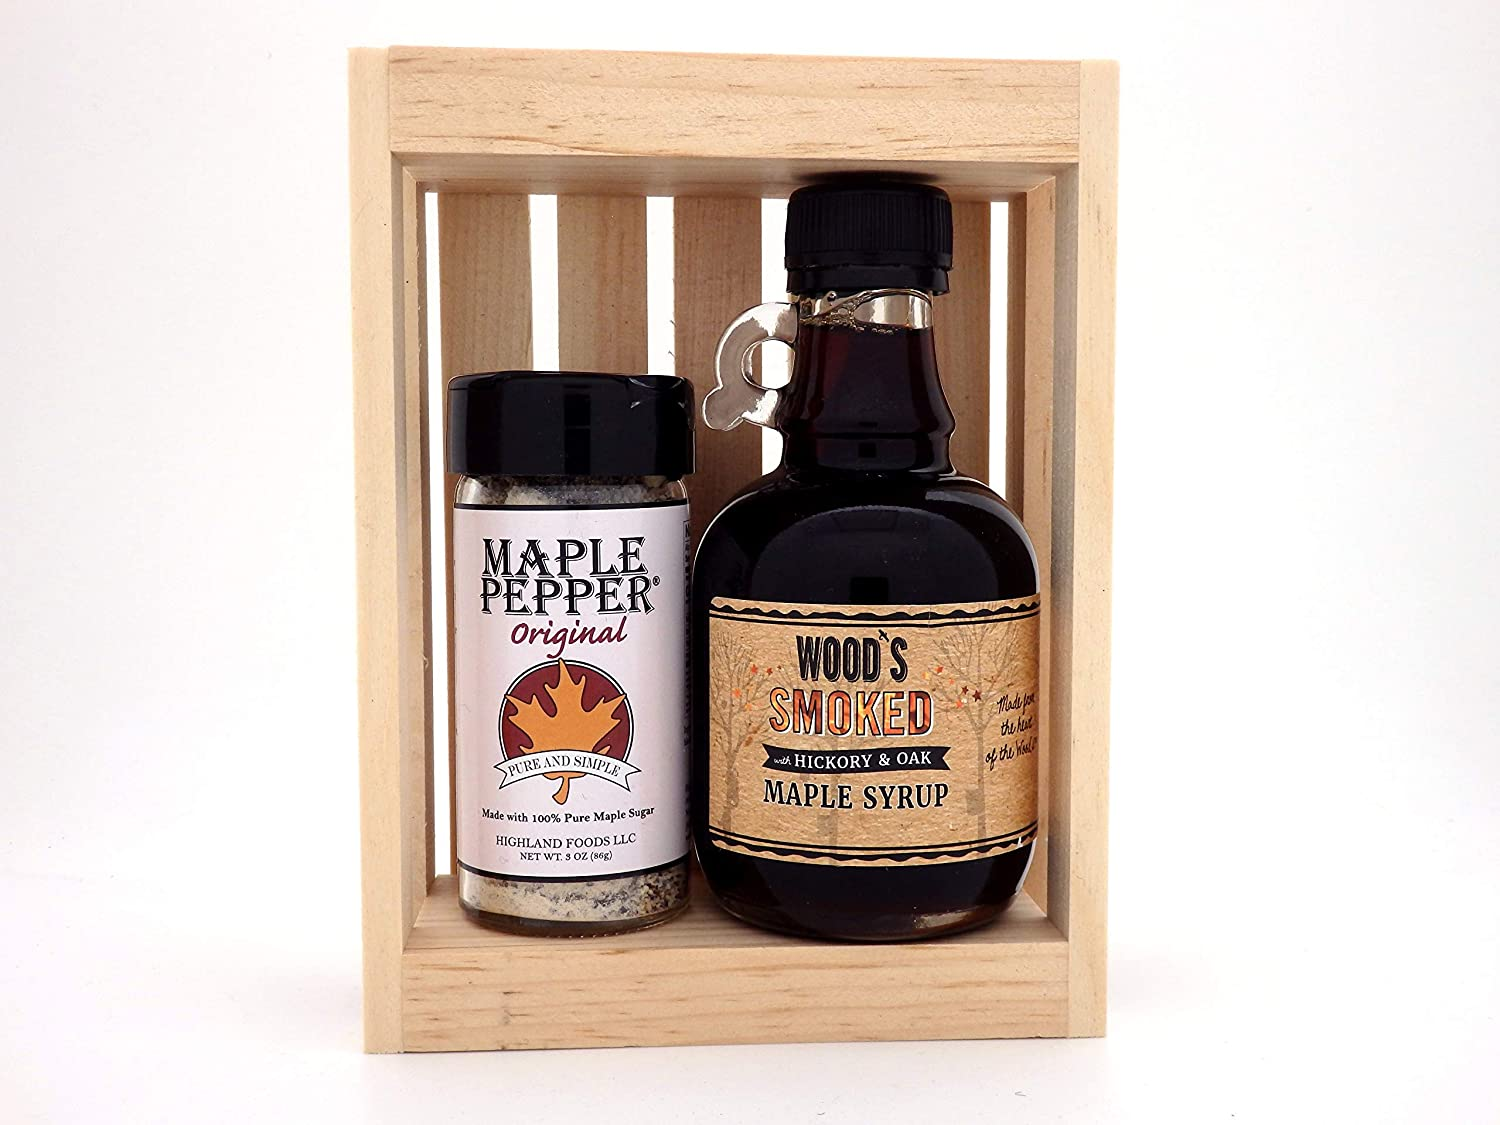 New England Maple Syrup Foodie Seasoning Gift Set - Maple Pepper Seasoning and Smoked Maple Syrup - in Gift Crate